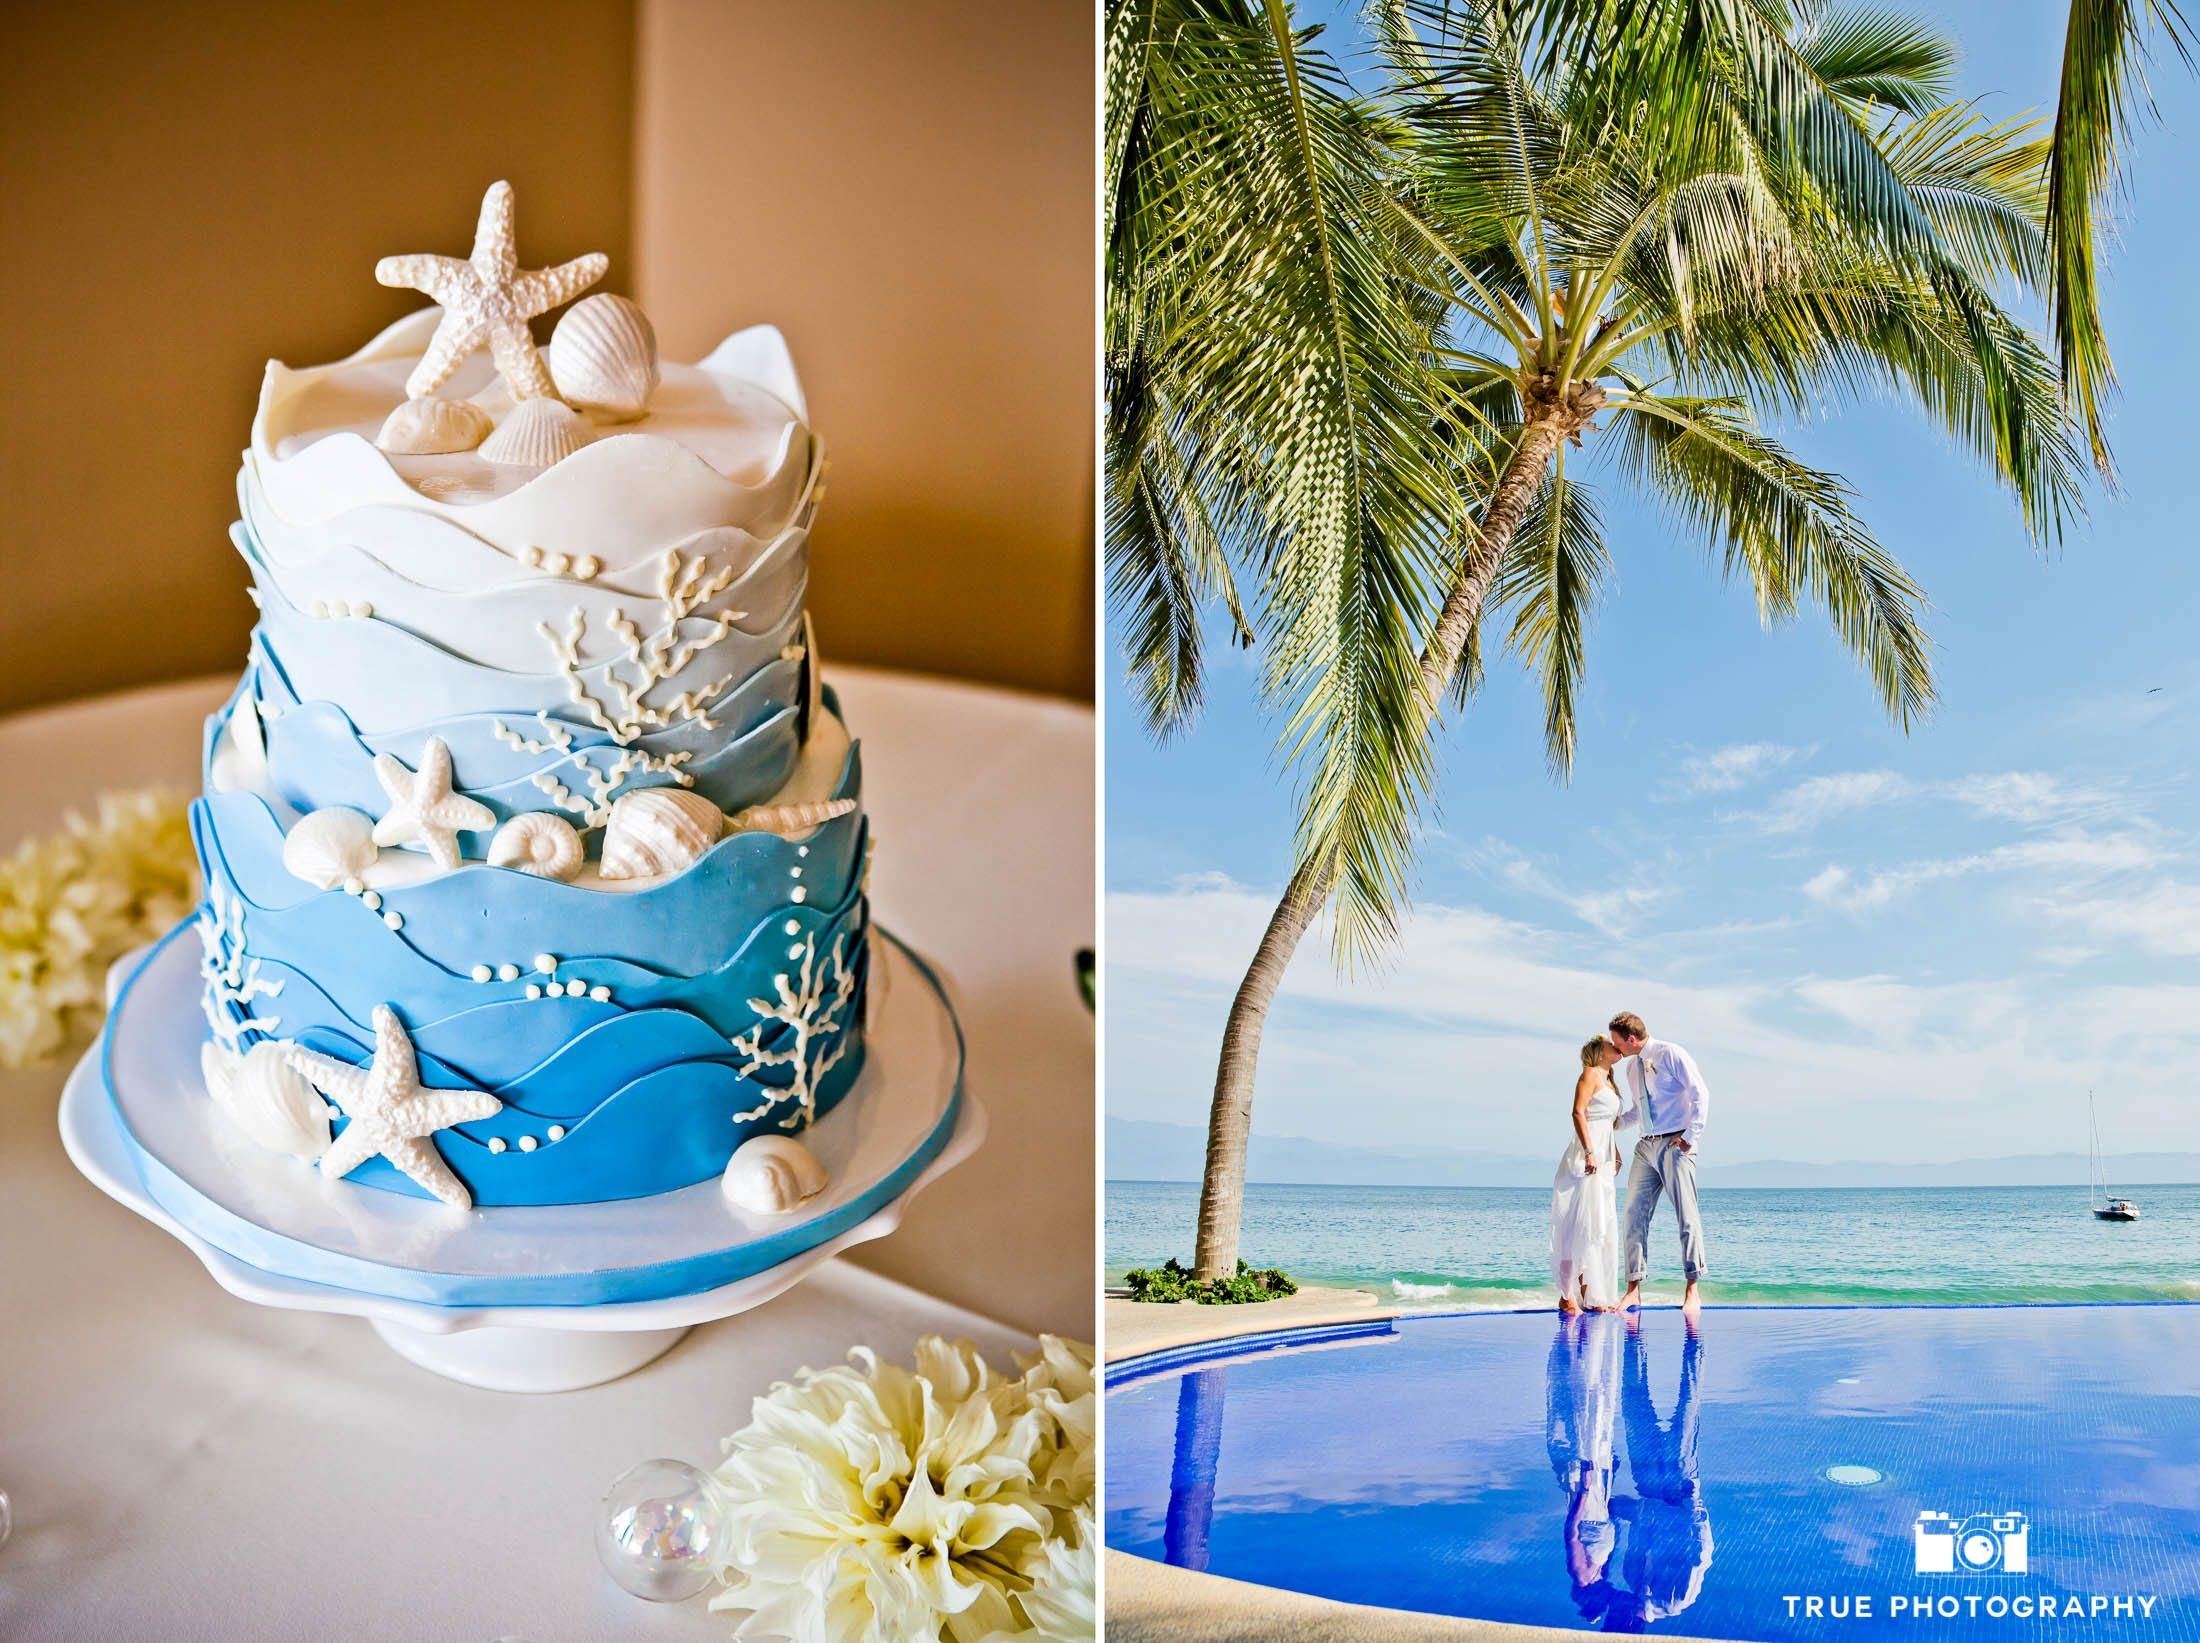 Tropical Beach Wedding with Blue Cake